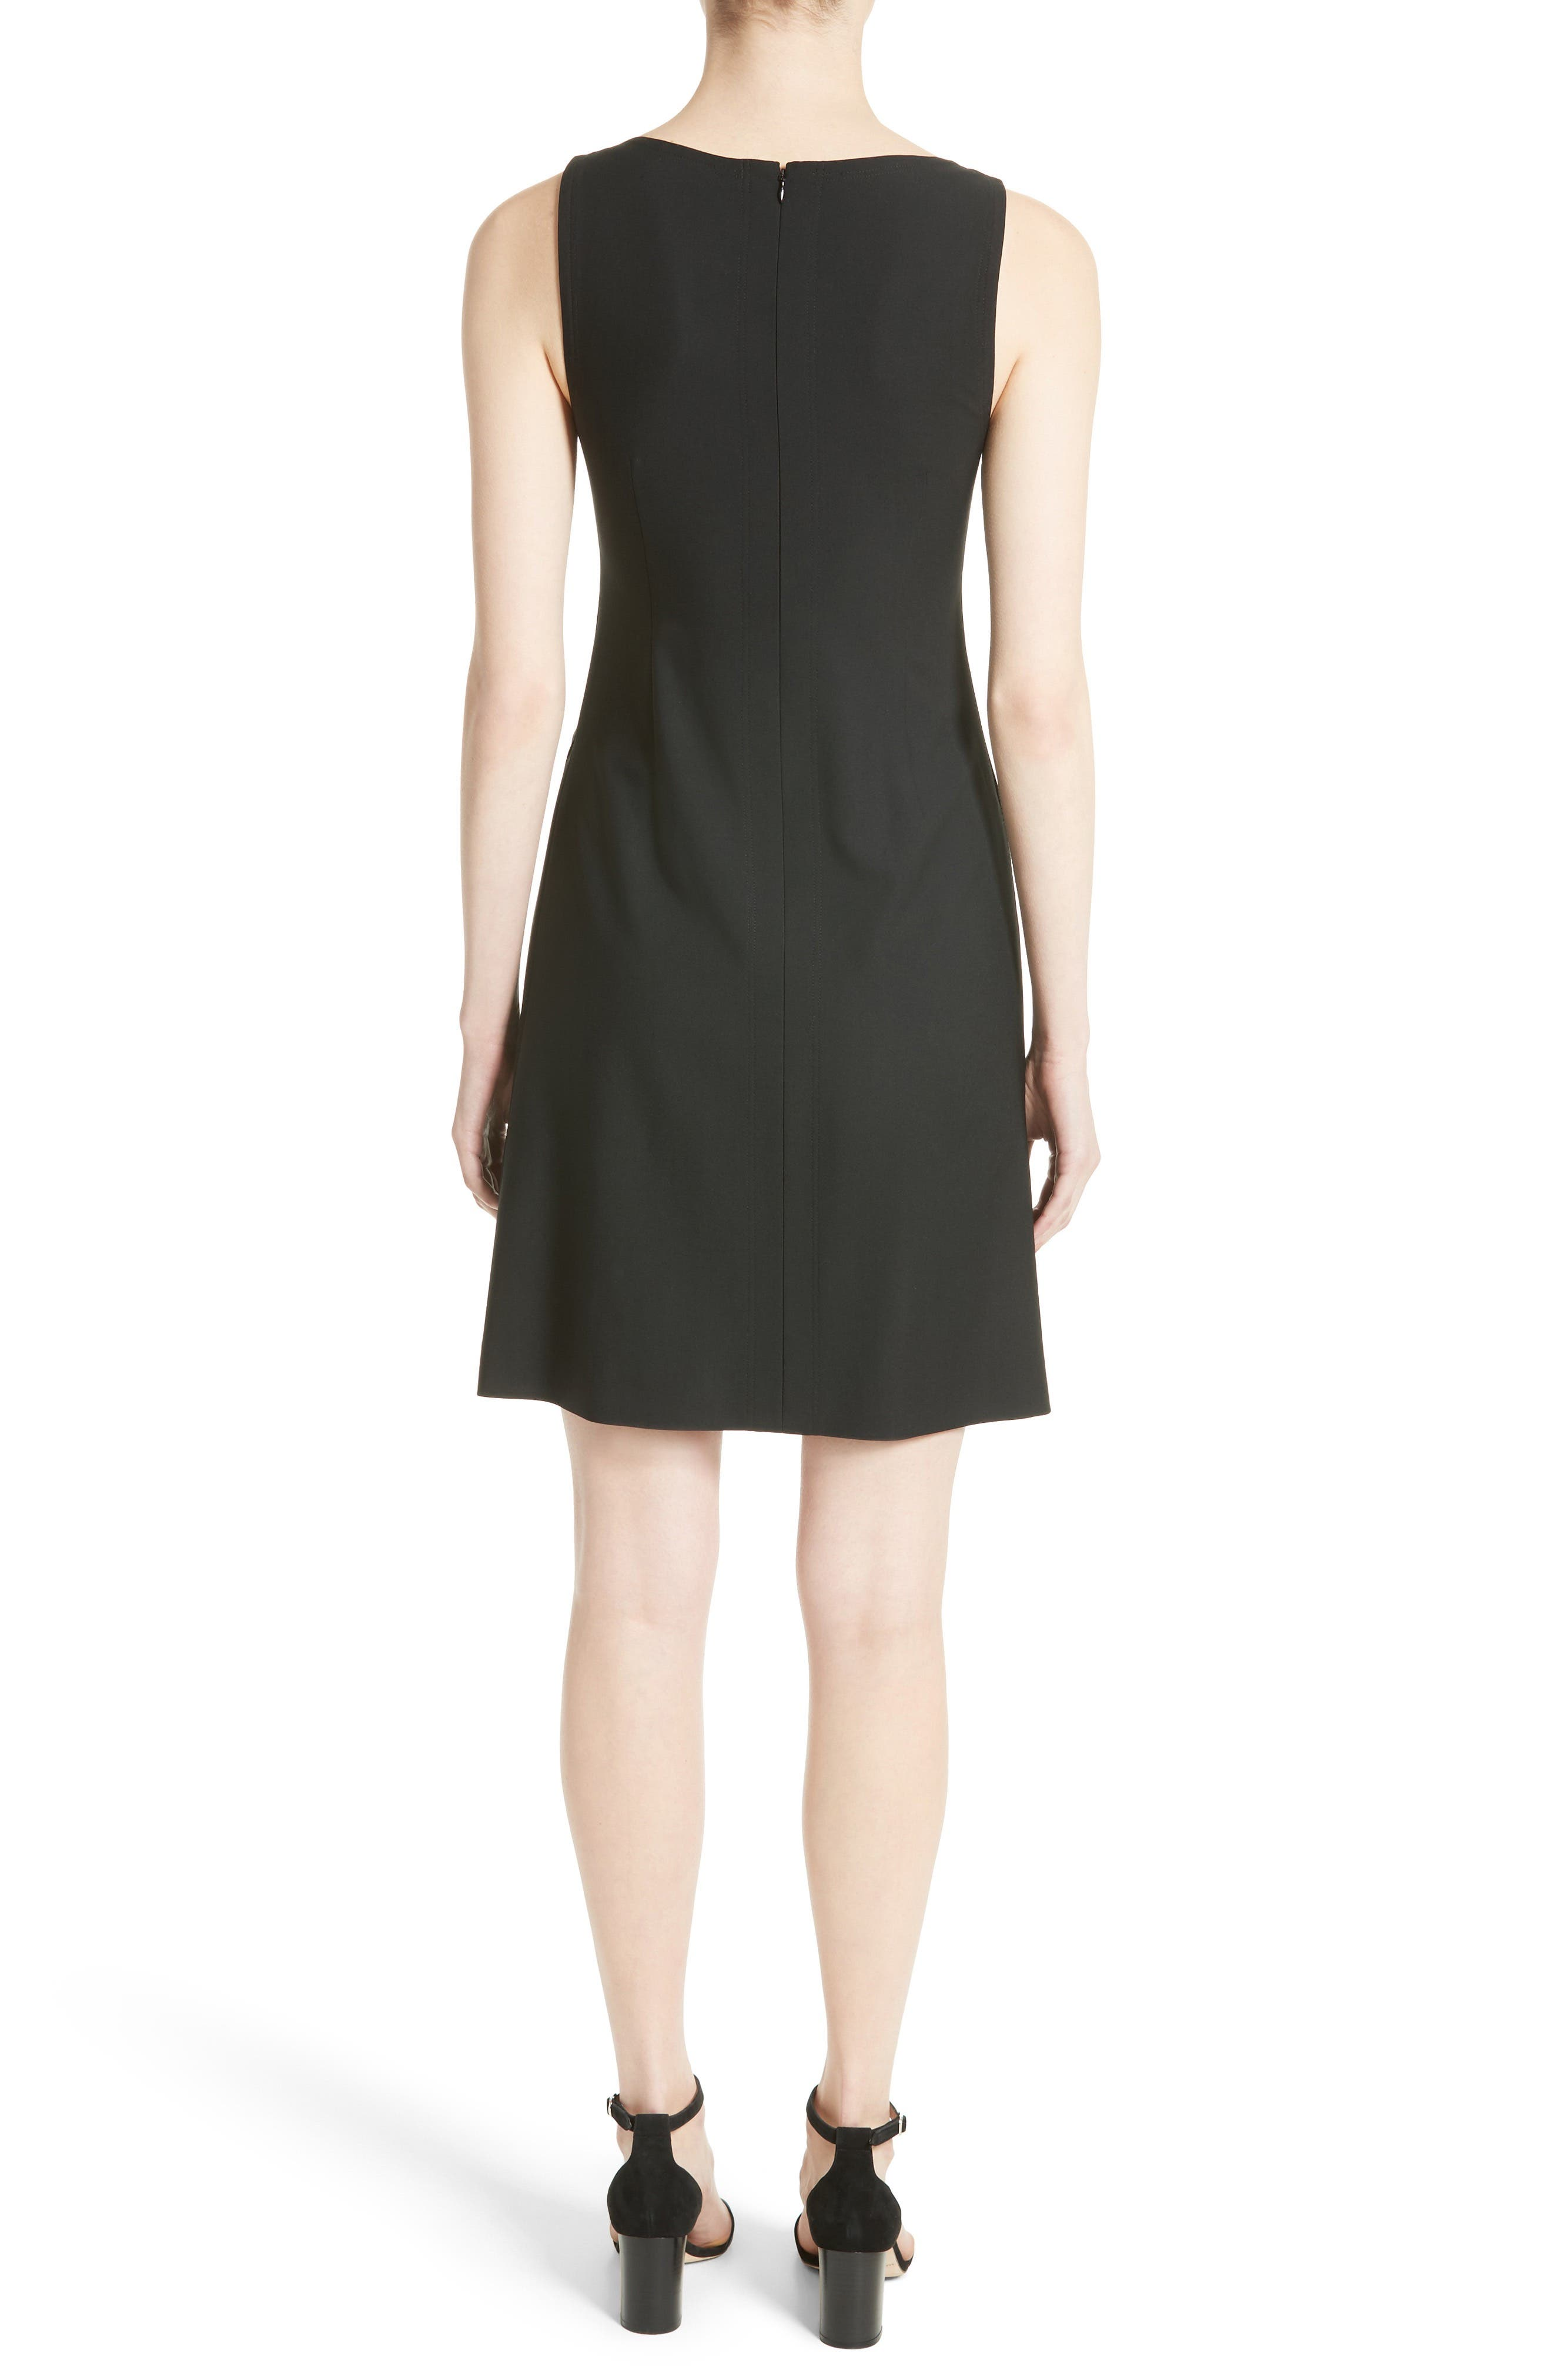 Risbana New Stretch Wool Dress,                             Alternate thumbnail 2, color,                             001